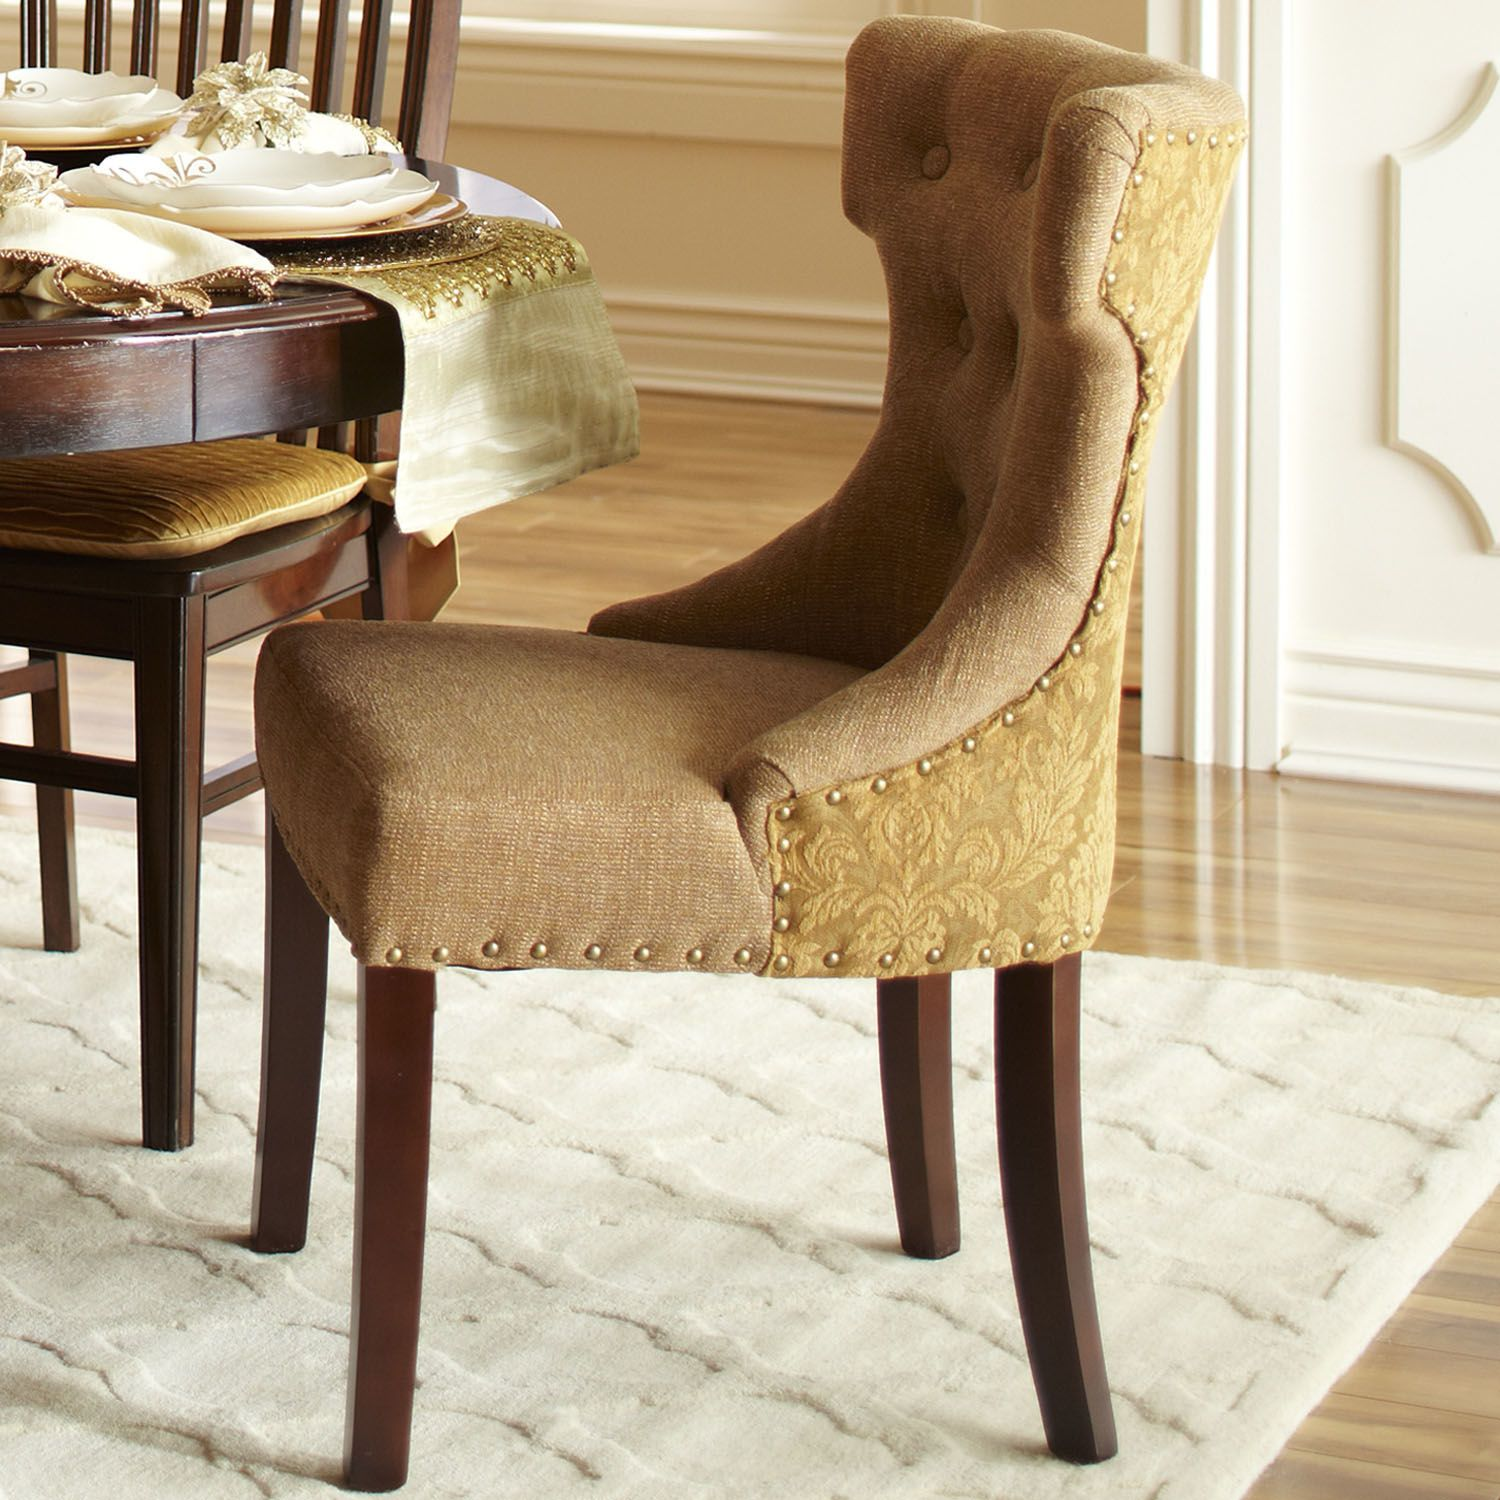 Damask Dining Chair Hourglass Dining Chair Gold Damask Pier 1 Imports Dining